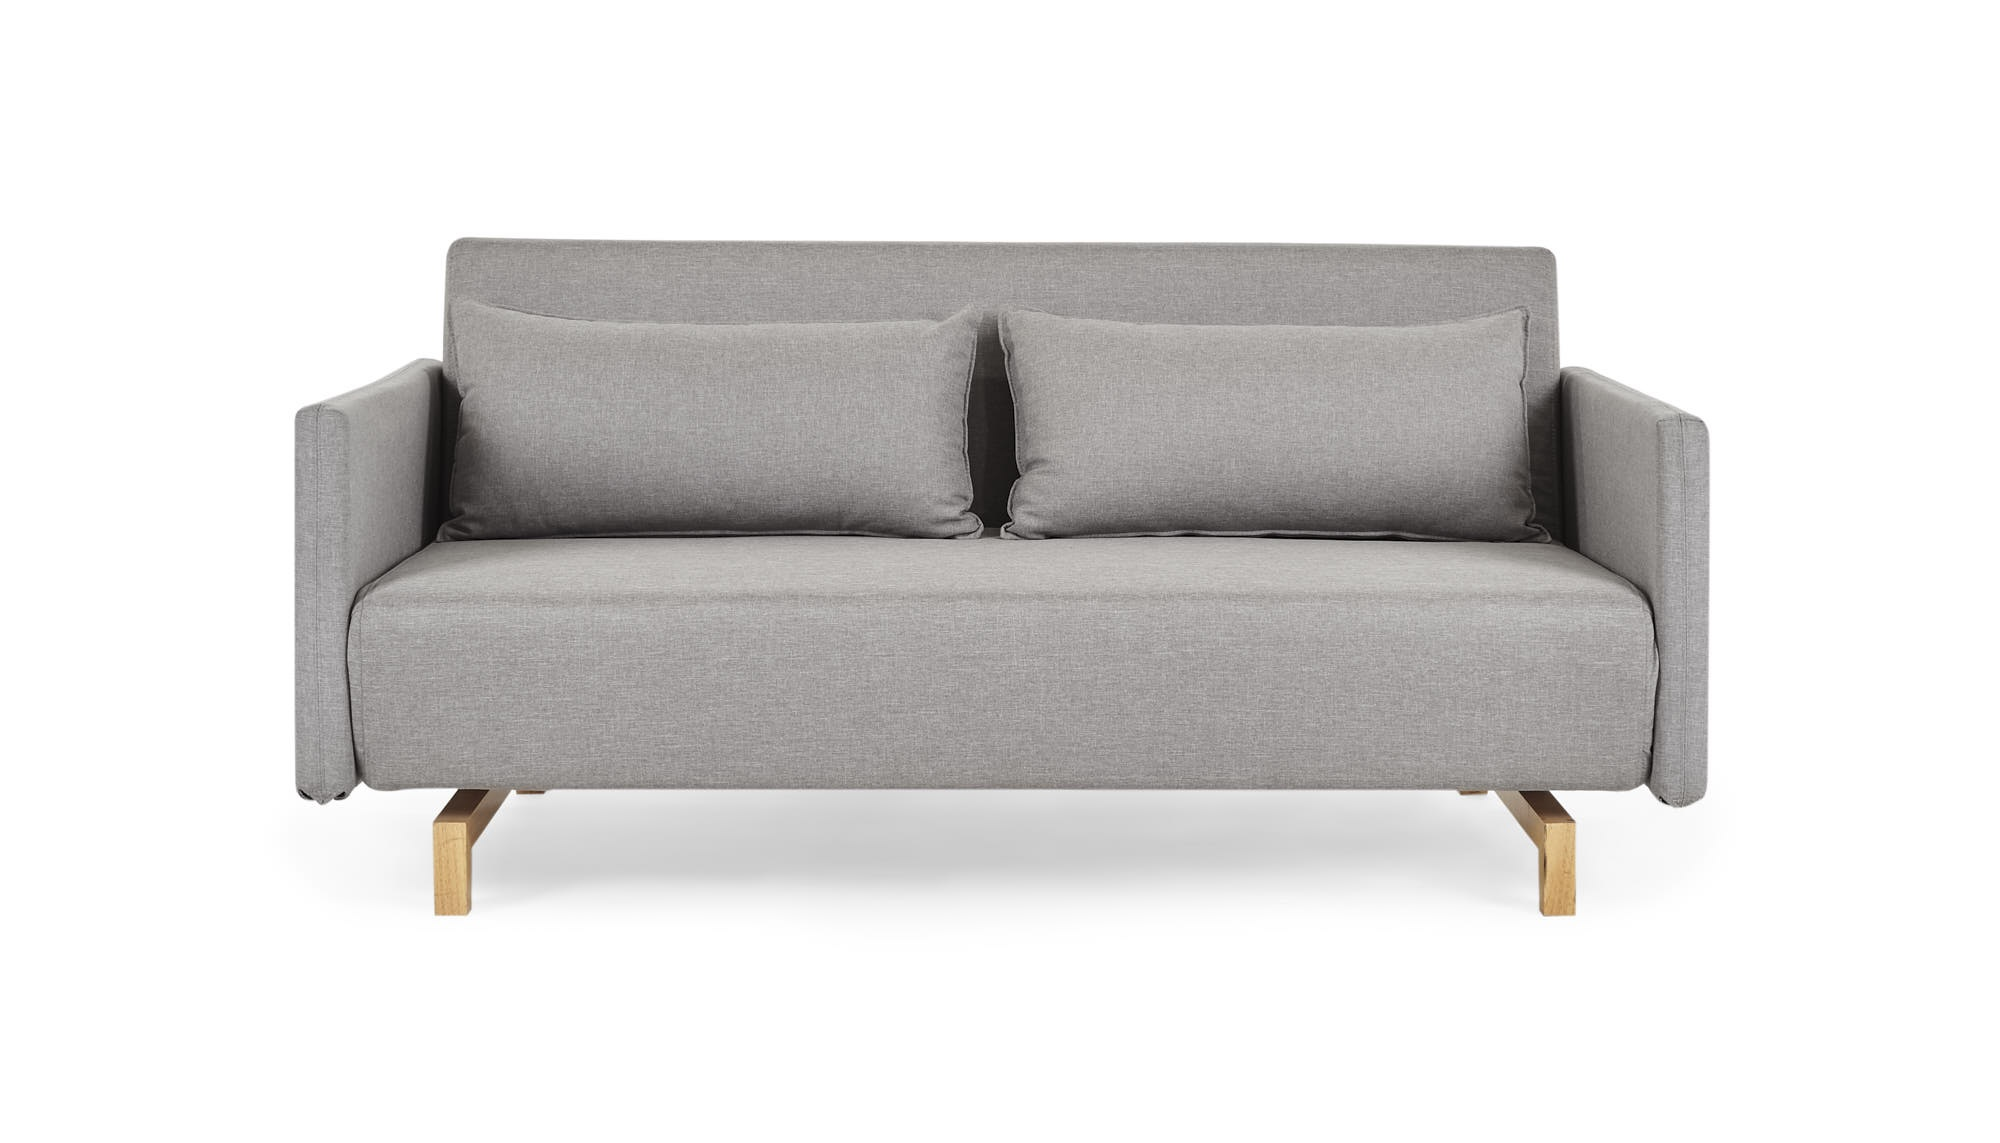 scandy oxford smoke light grey fabric queen 2 seater sofa bed front view aztjptr